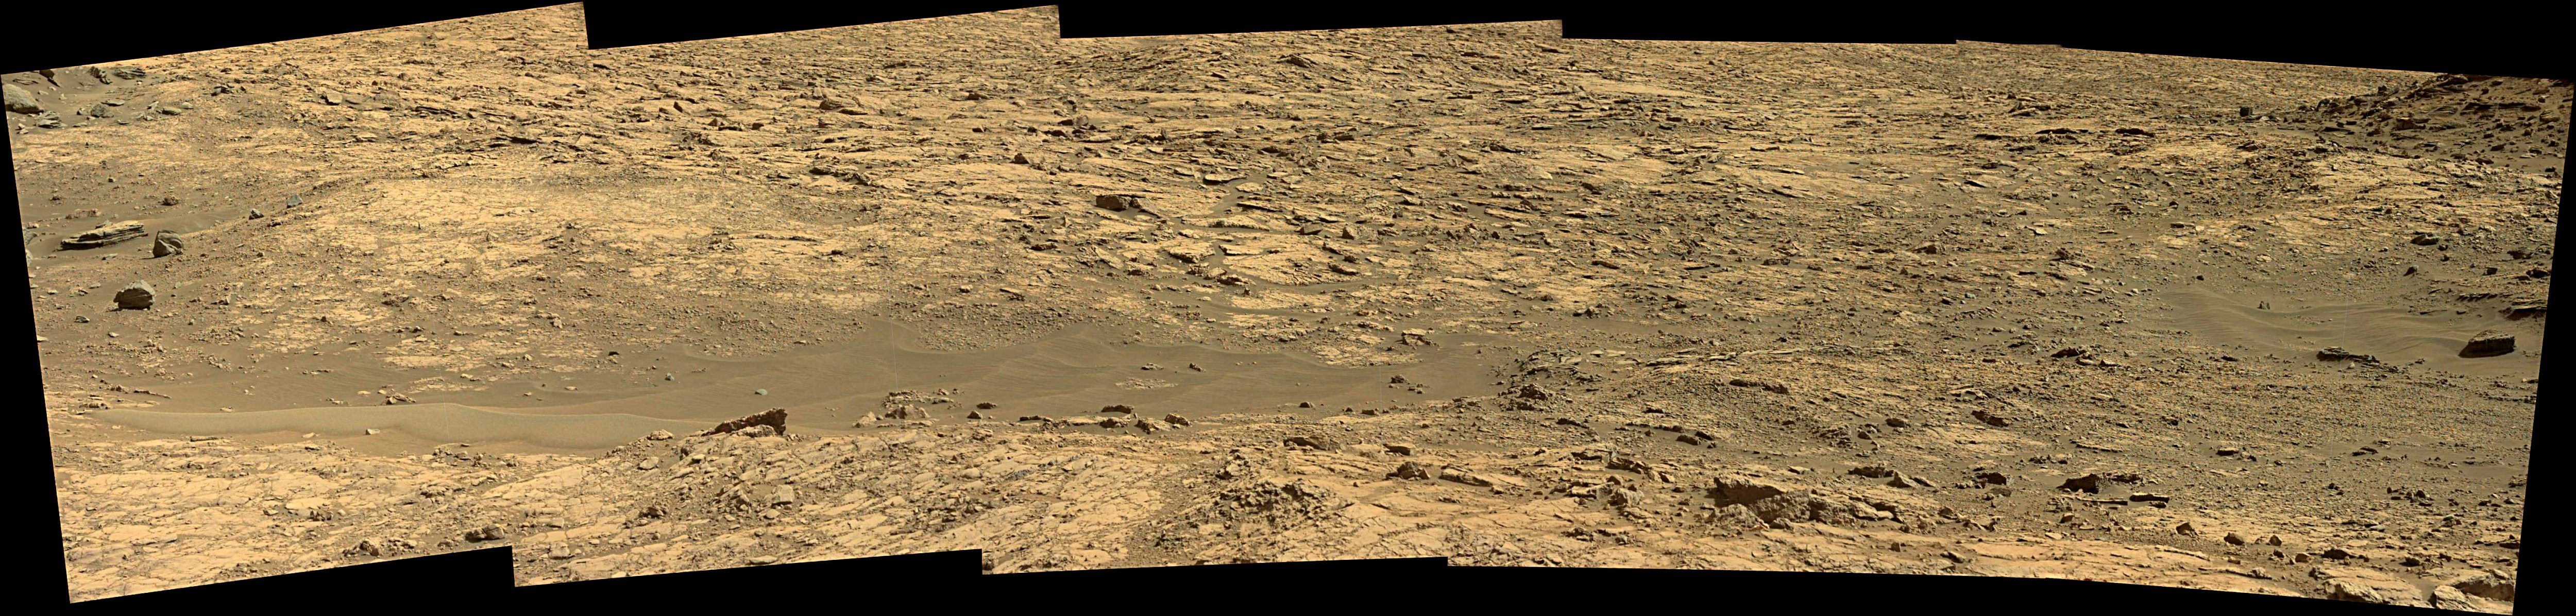 panoramic curiosity rover view 1e - sol 1431 - was life on mars